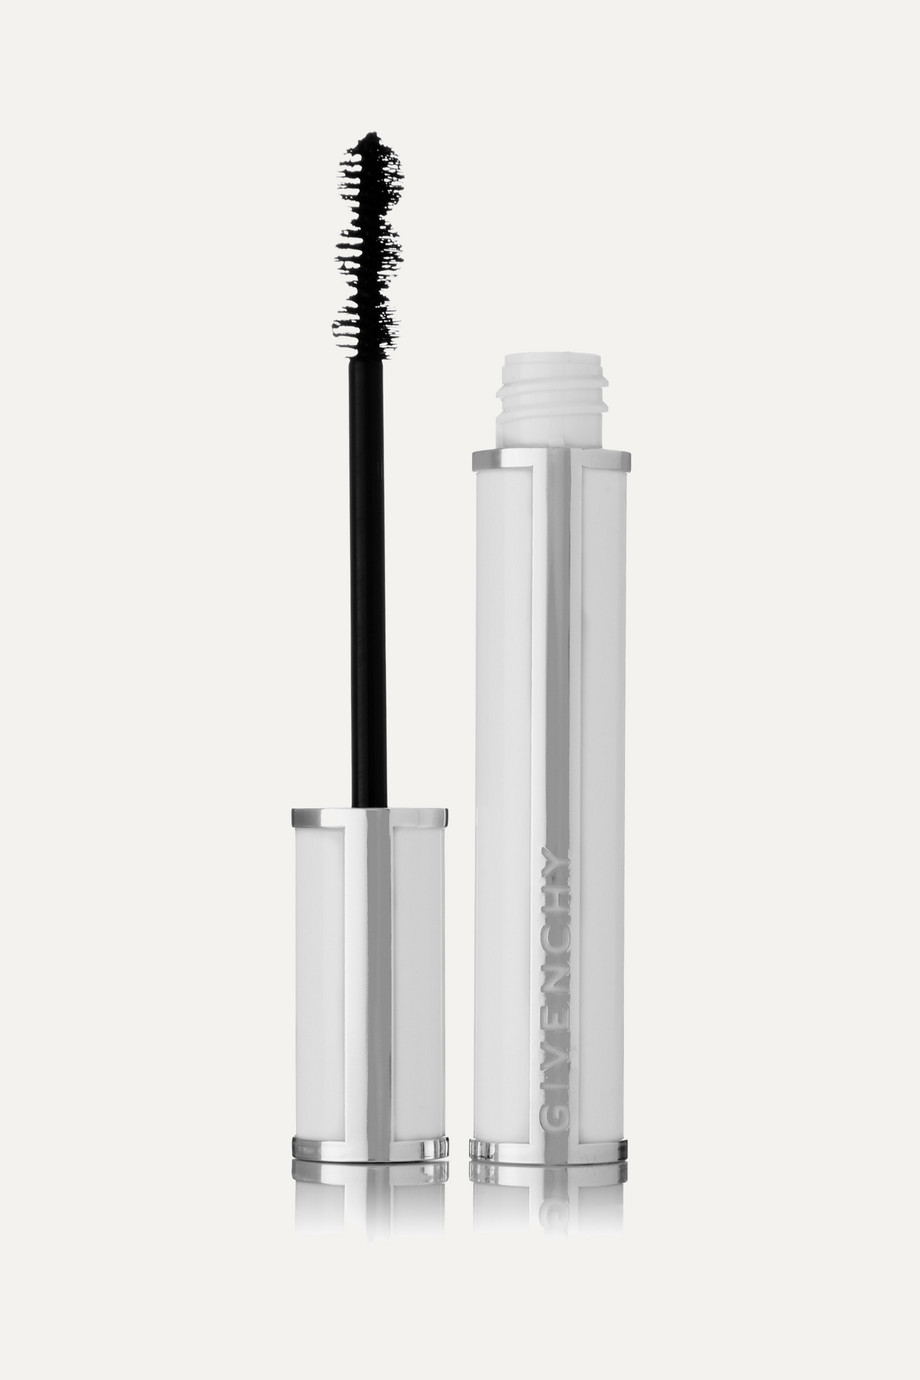 Givenchy Beauty Noir Couture Waterproof 4 in 1 Mascara - Black Velvet